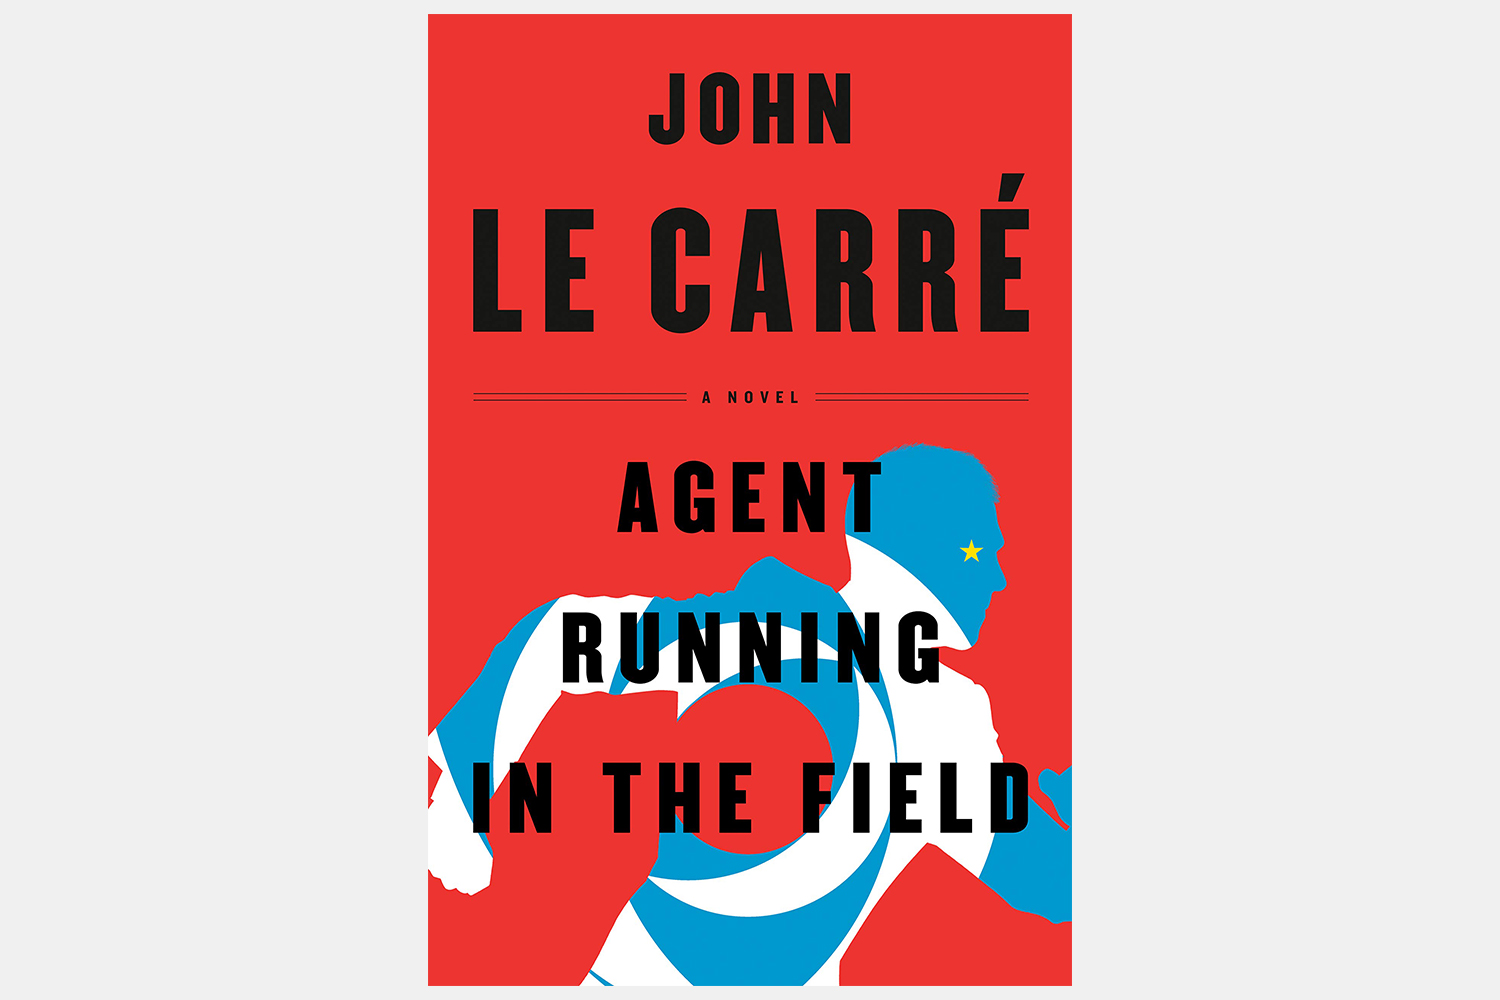 Agent Running in the Field Book John le Carré